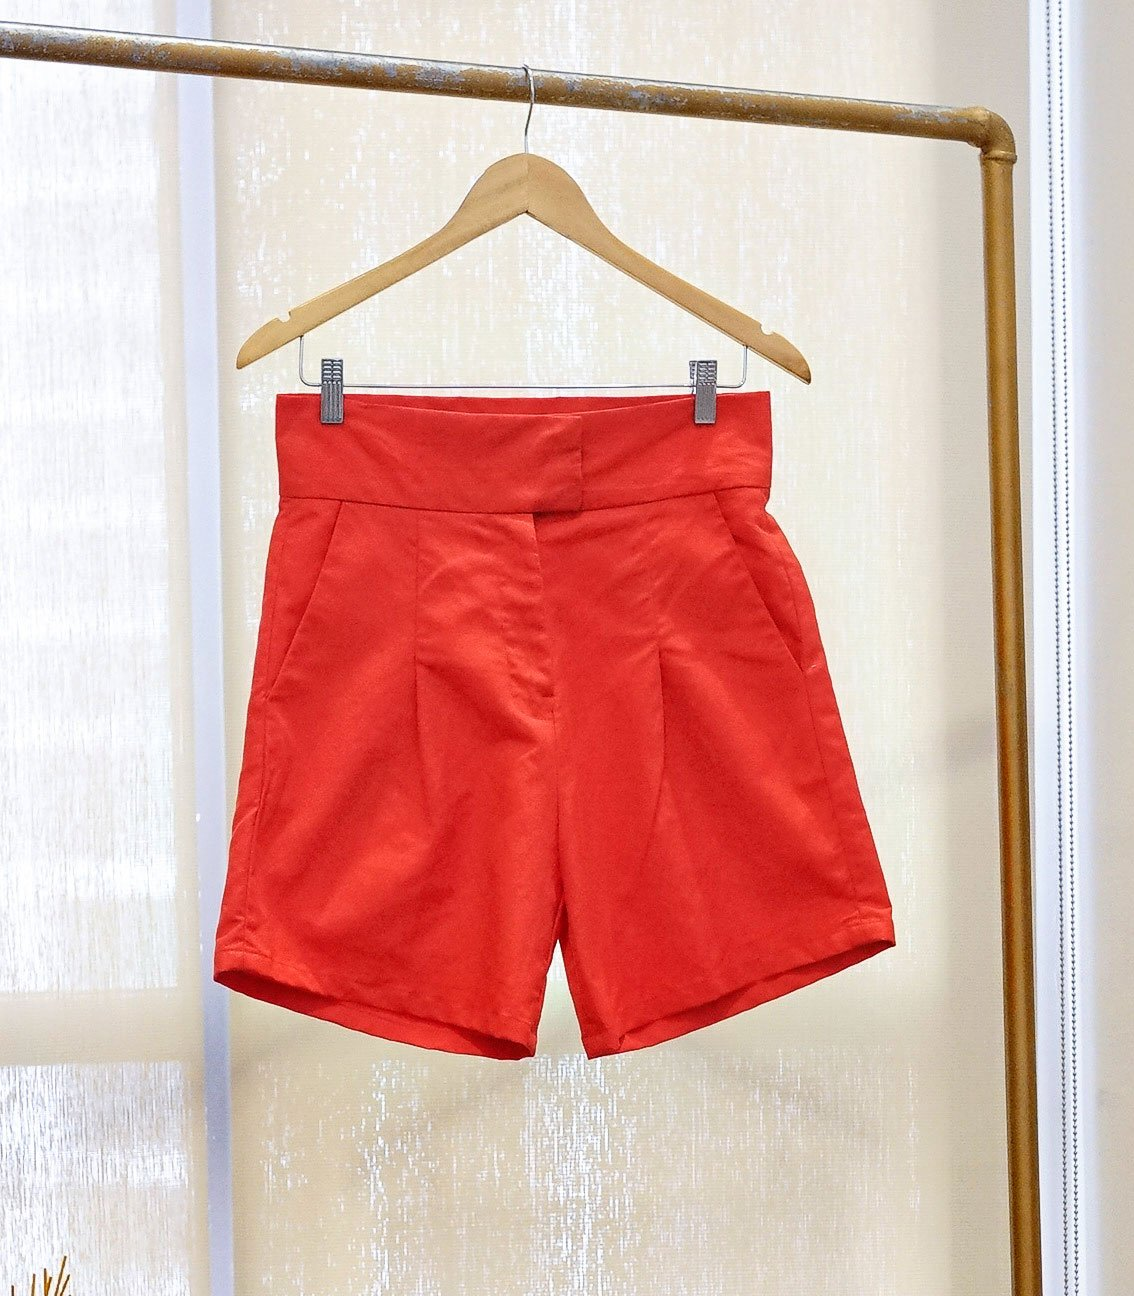 Shorts - SAMPLE 297 | Pleat-front High Waist Shorts